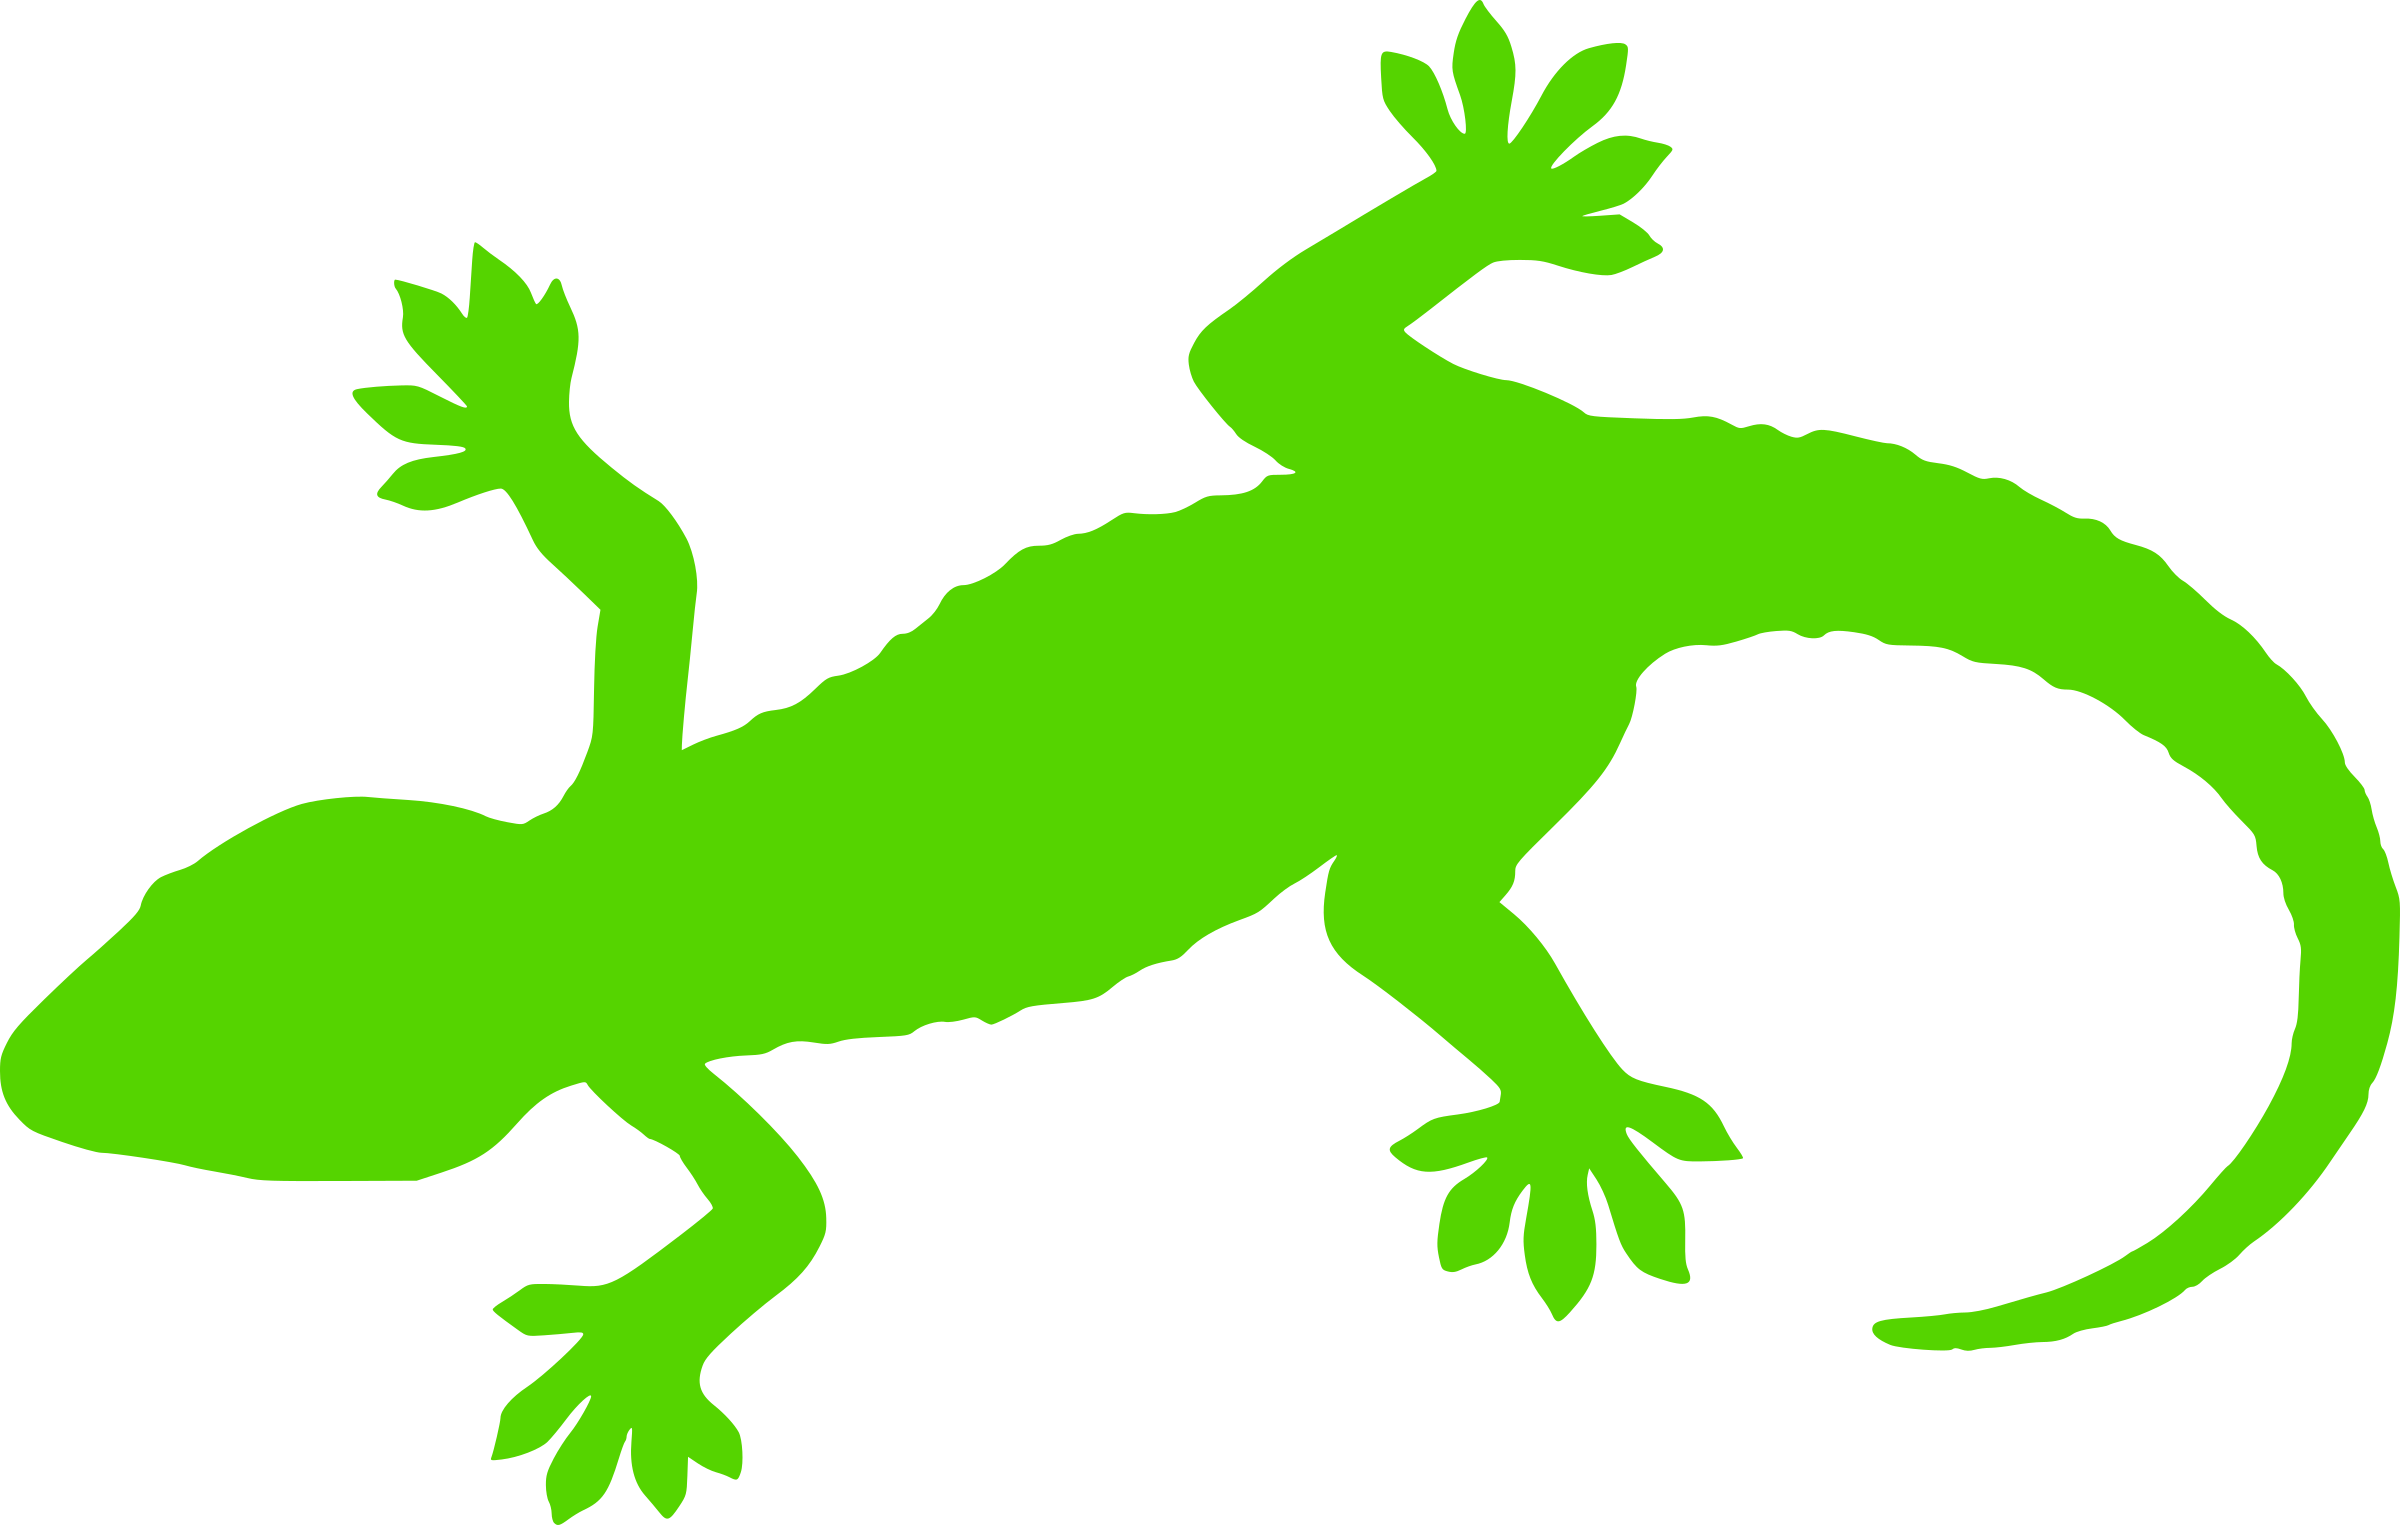 Gecko clipart svg. Green silhouette icons png